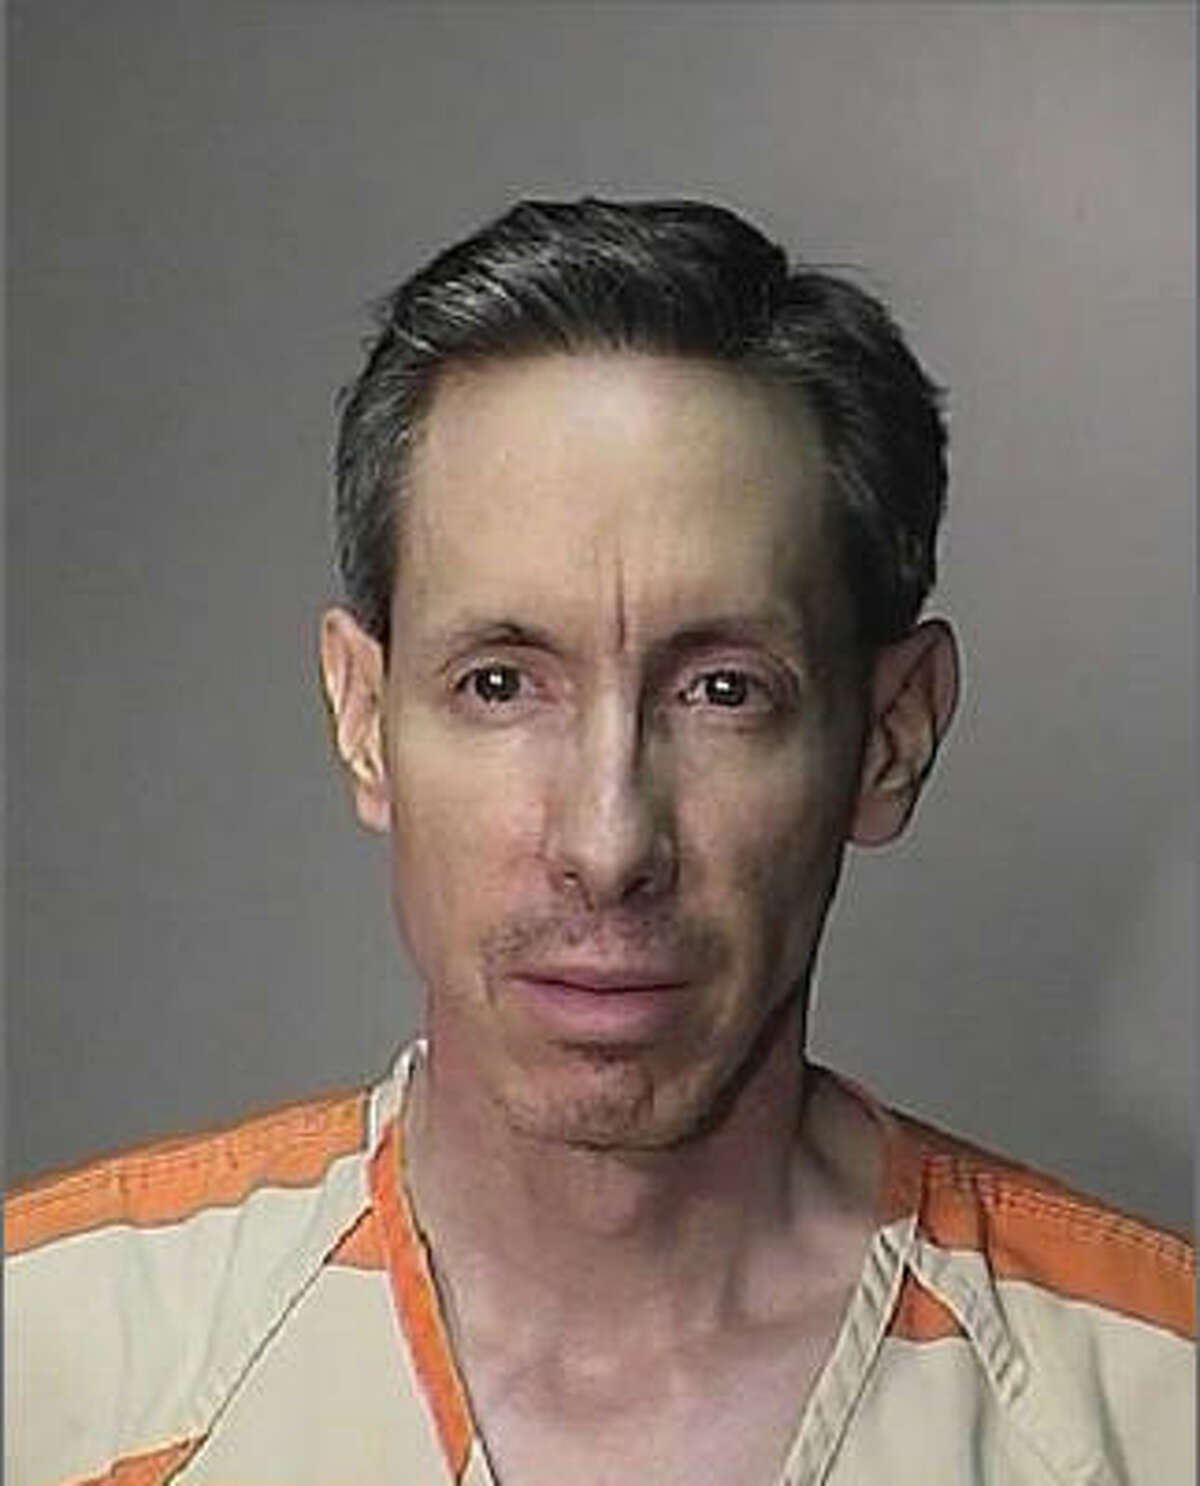 In a case last year, polygamist sect leader Warren Jeffs, shown in a jail booking photo in Arizona, was convicted on two counts of being an accomplice to rape for his role in forcing a 14-year-old sect member to marry her 19-year-old cousin.